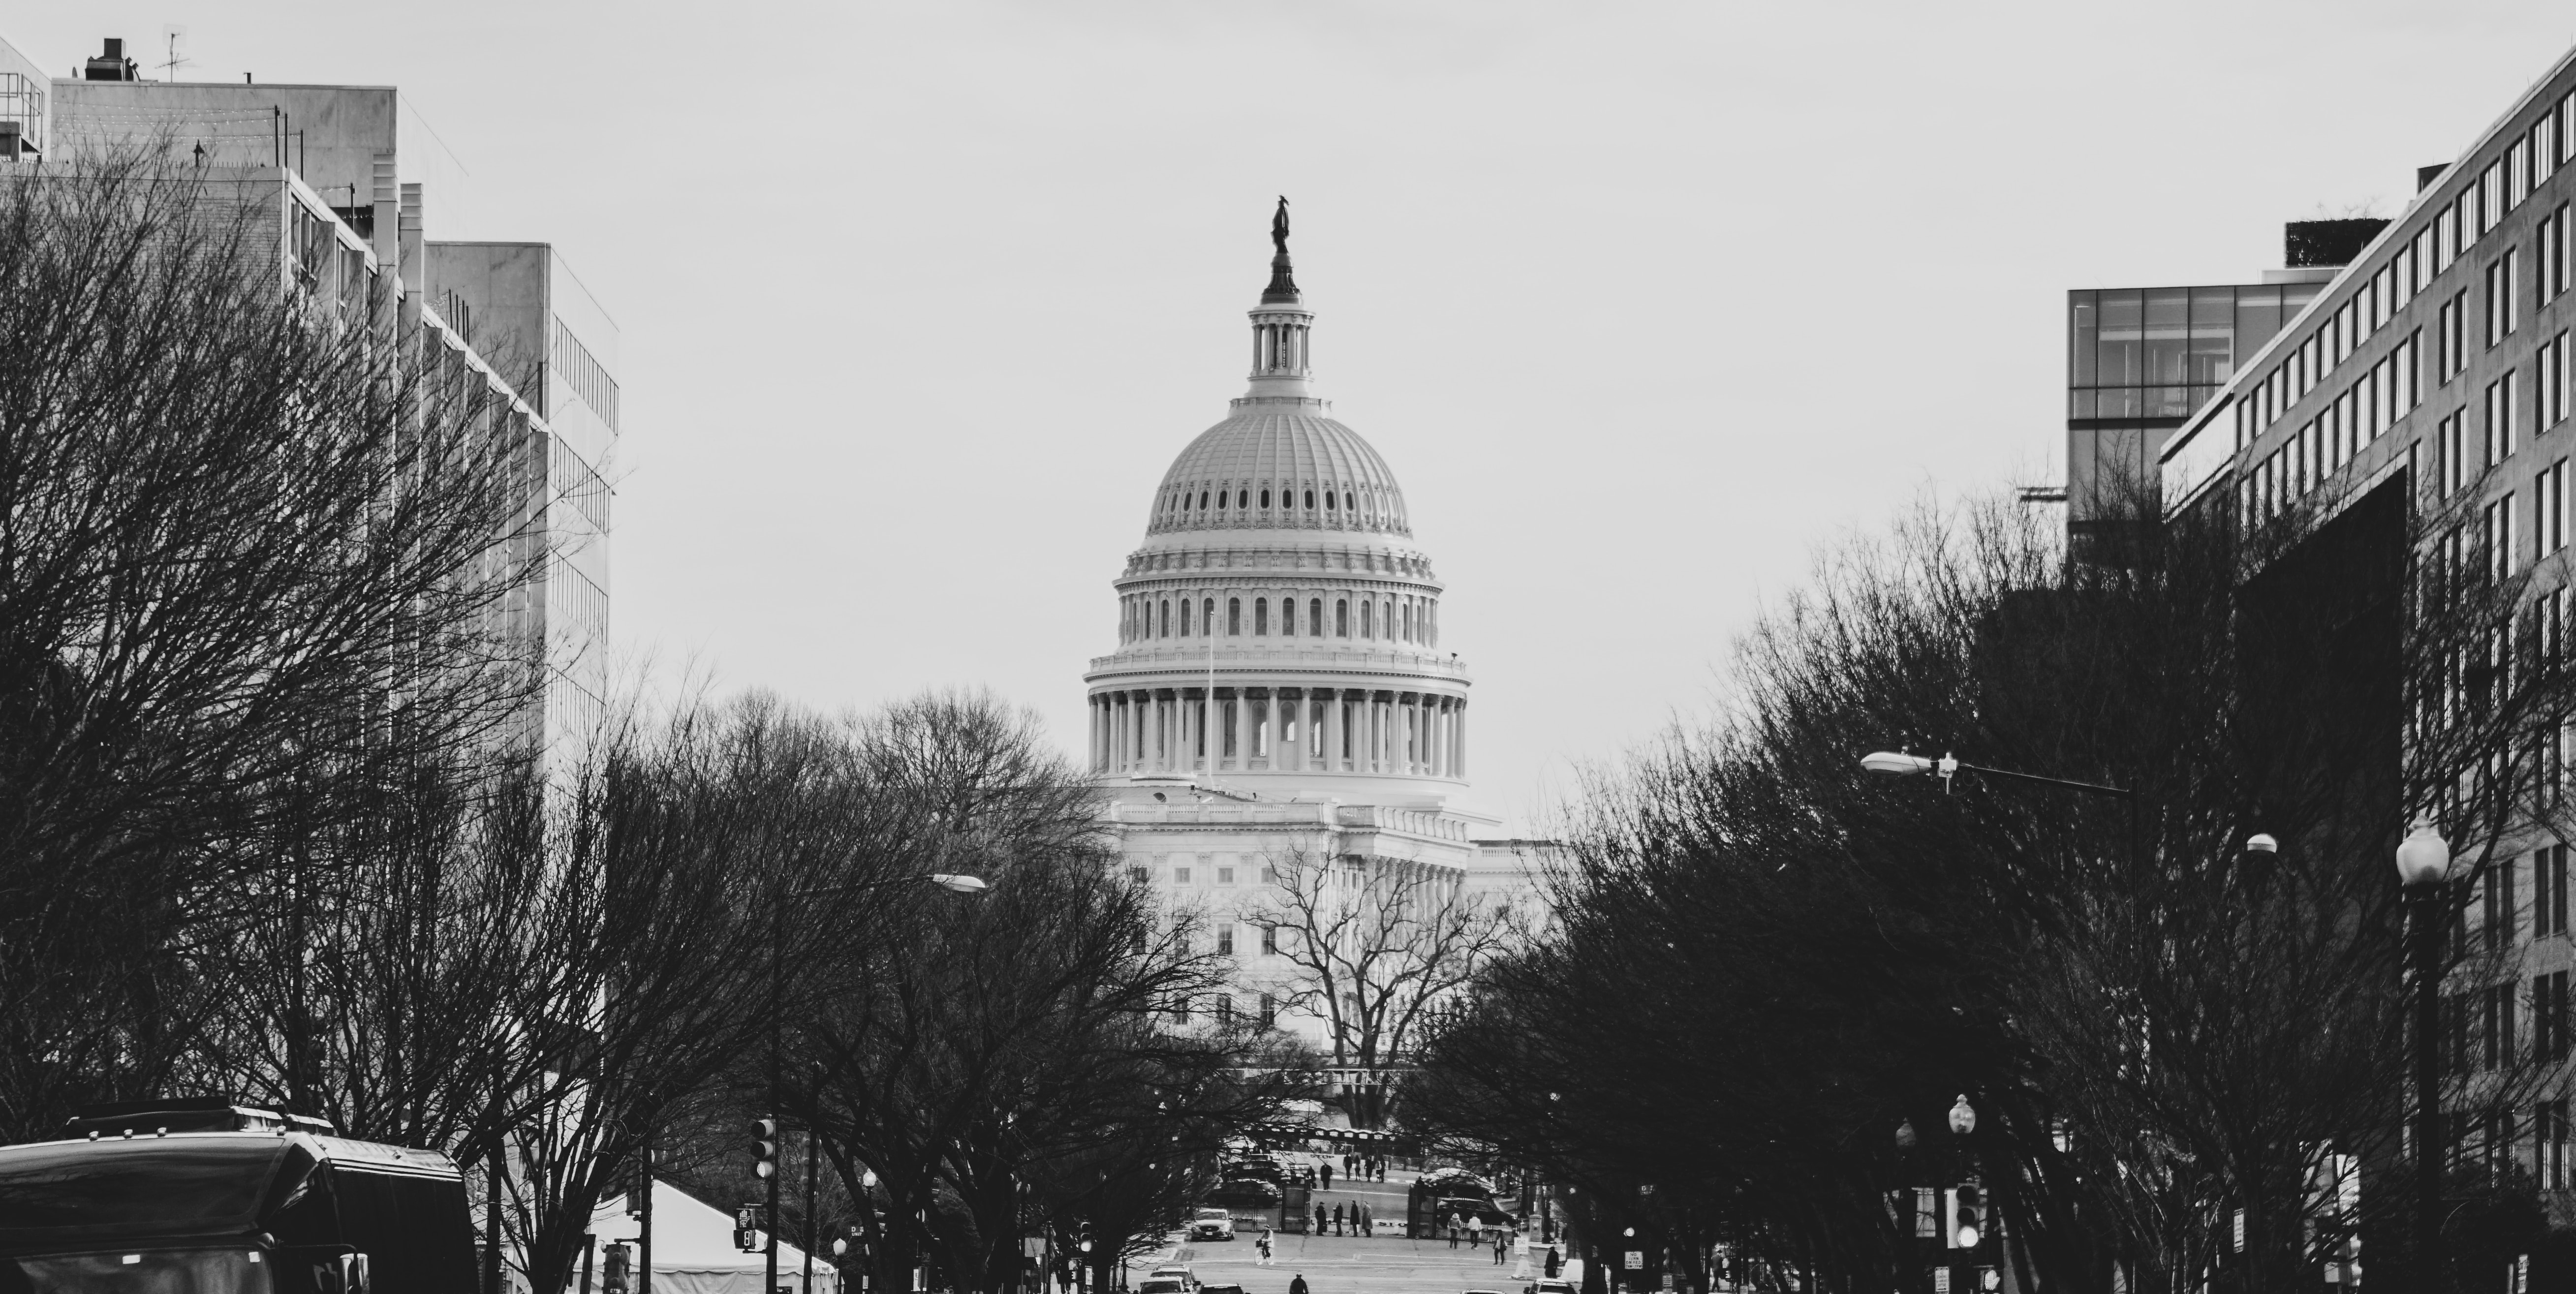 Making Your Voice Heard on The Hill